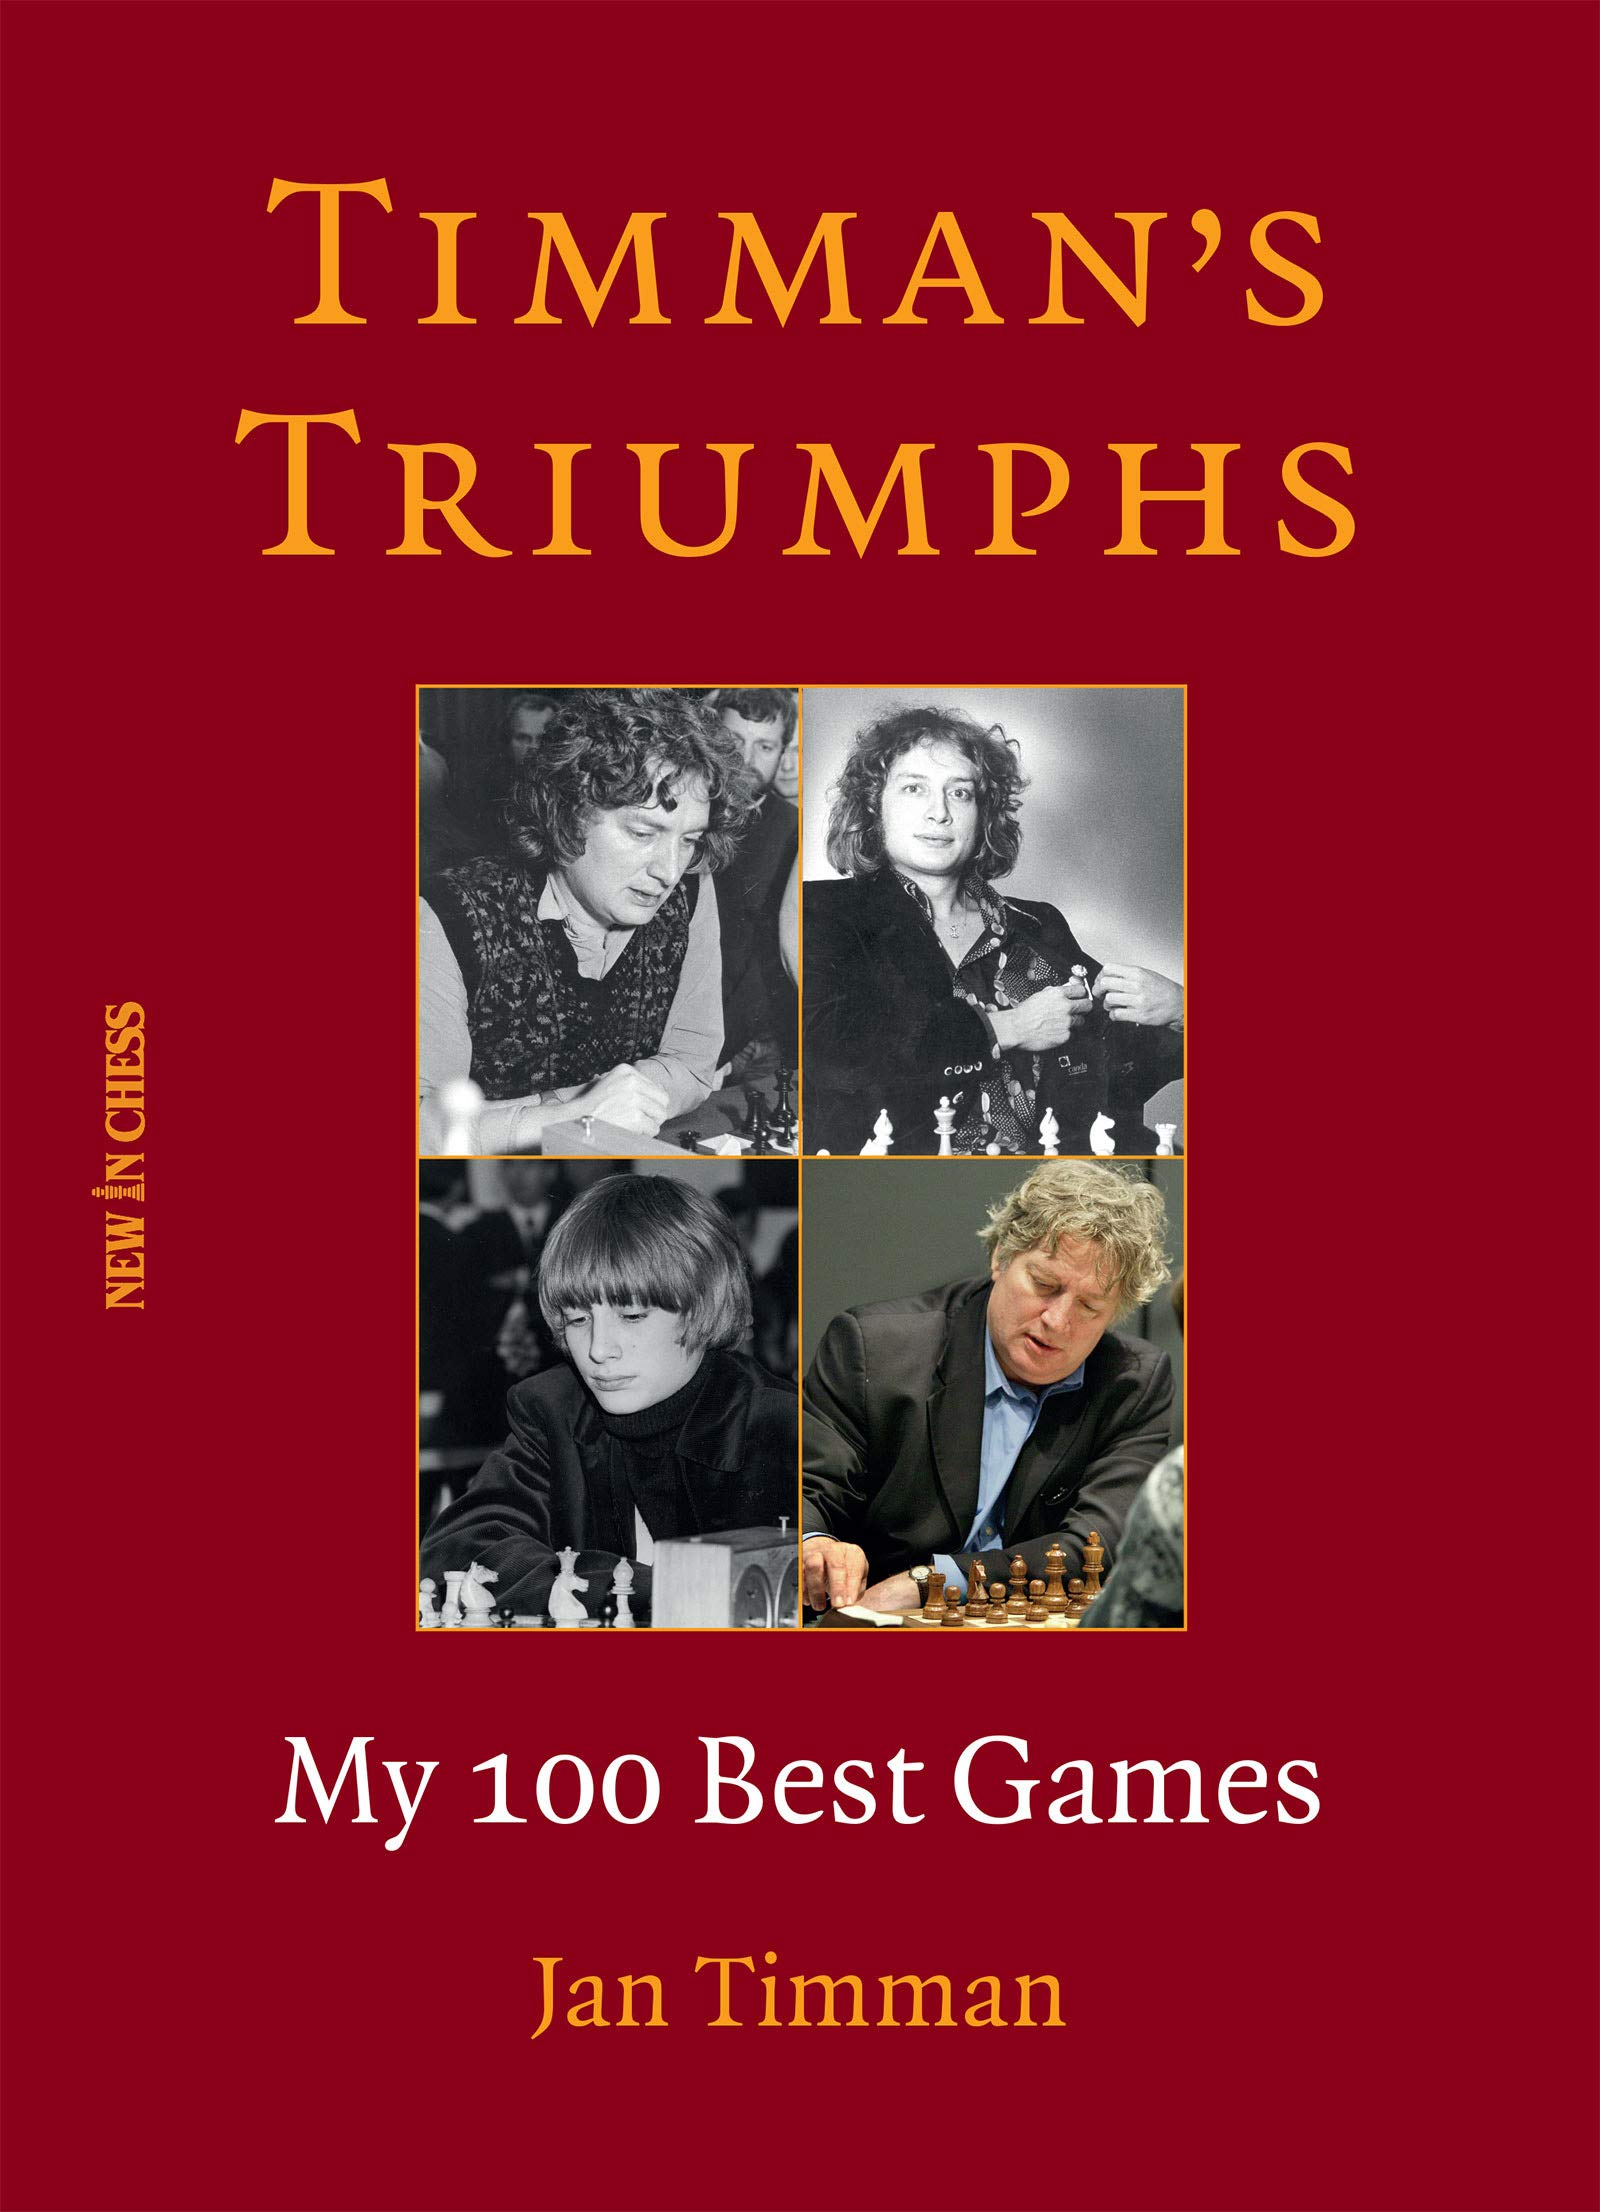 Timman's Triumphs : My 100 Best Games